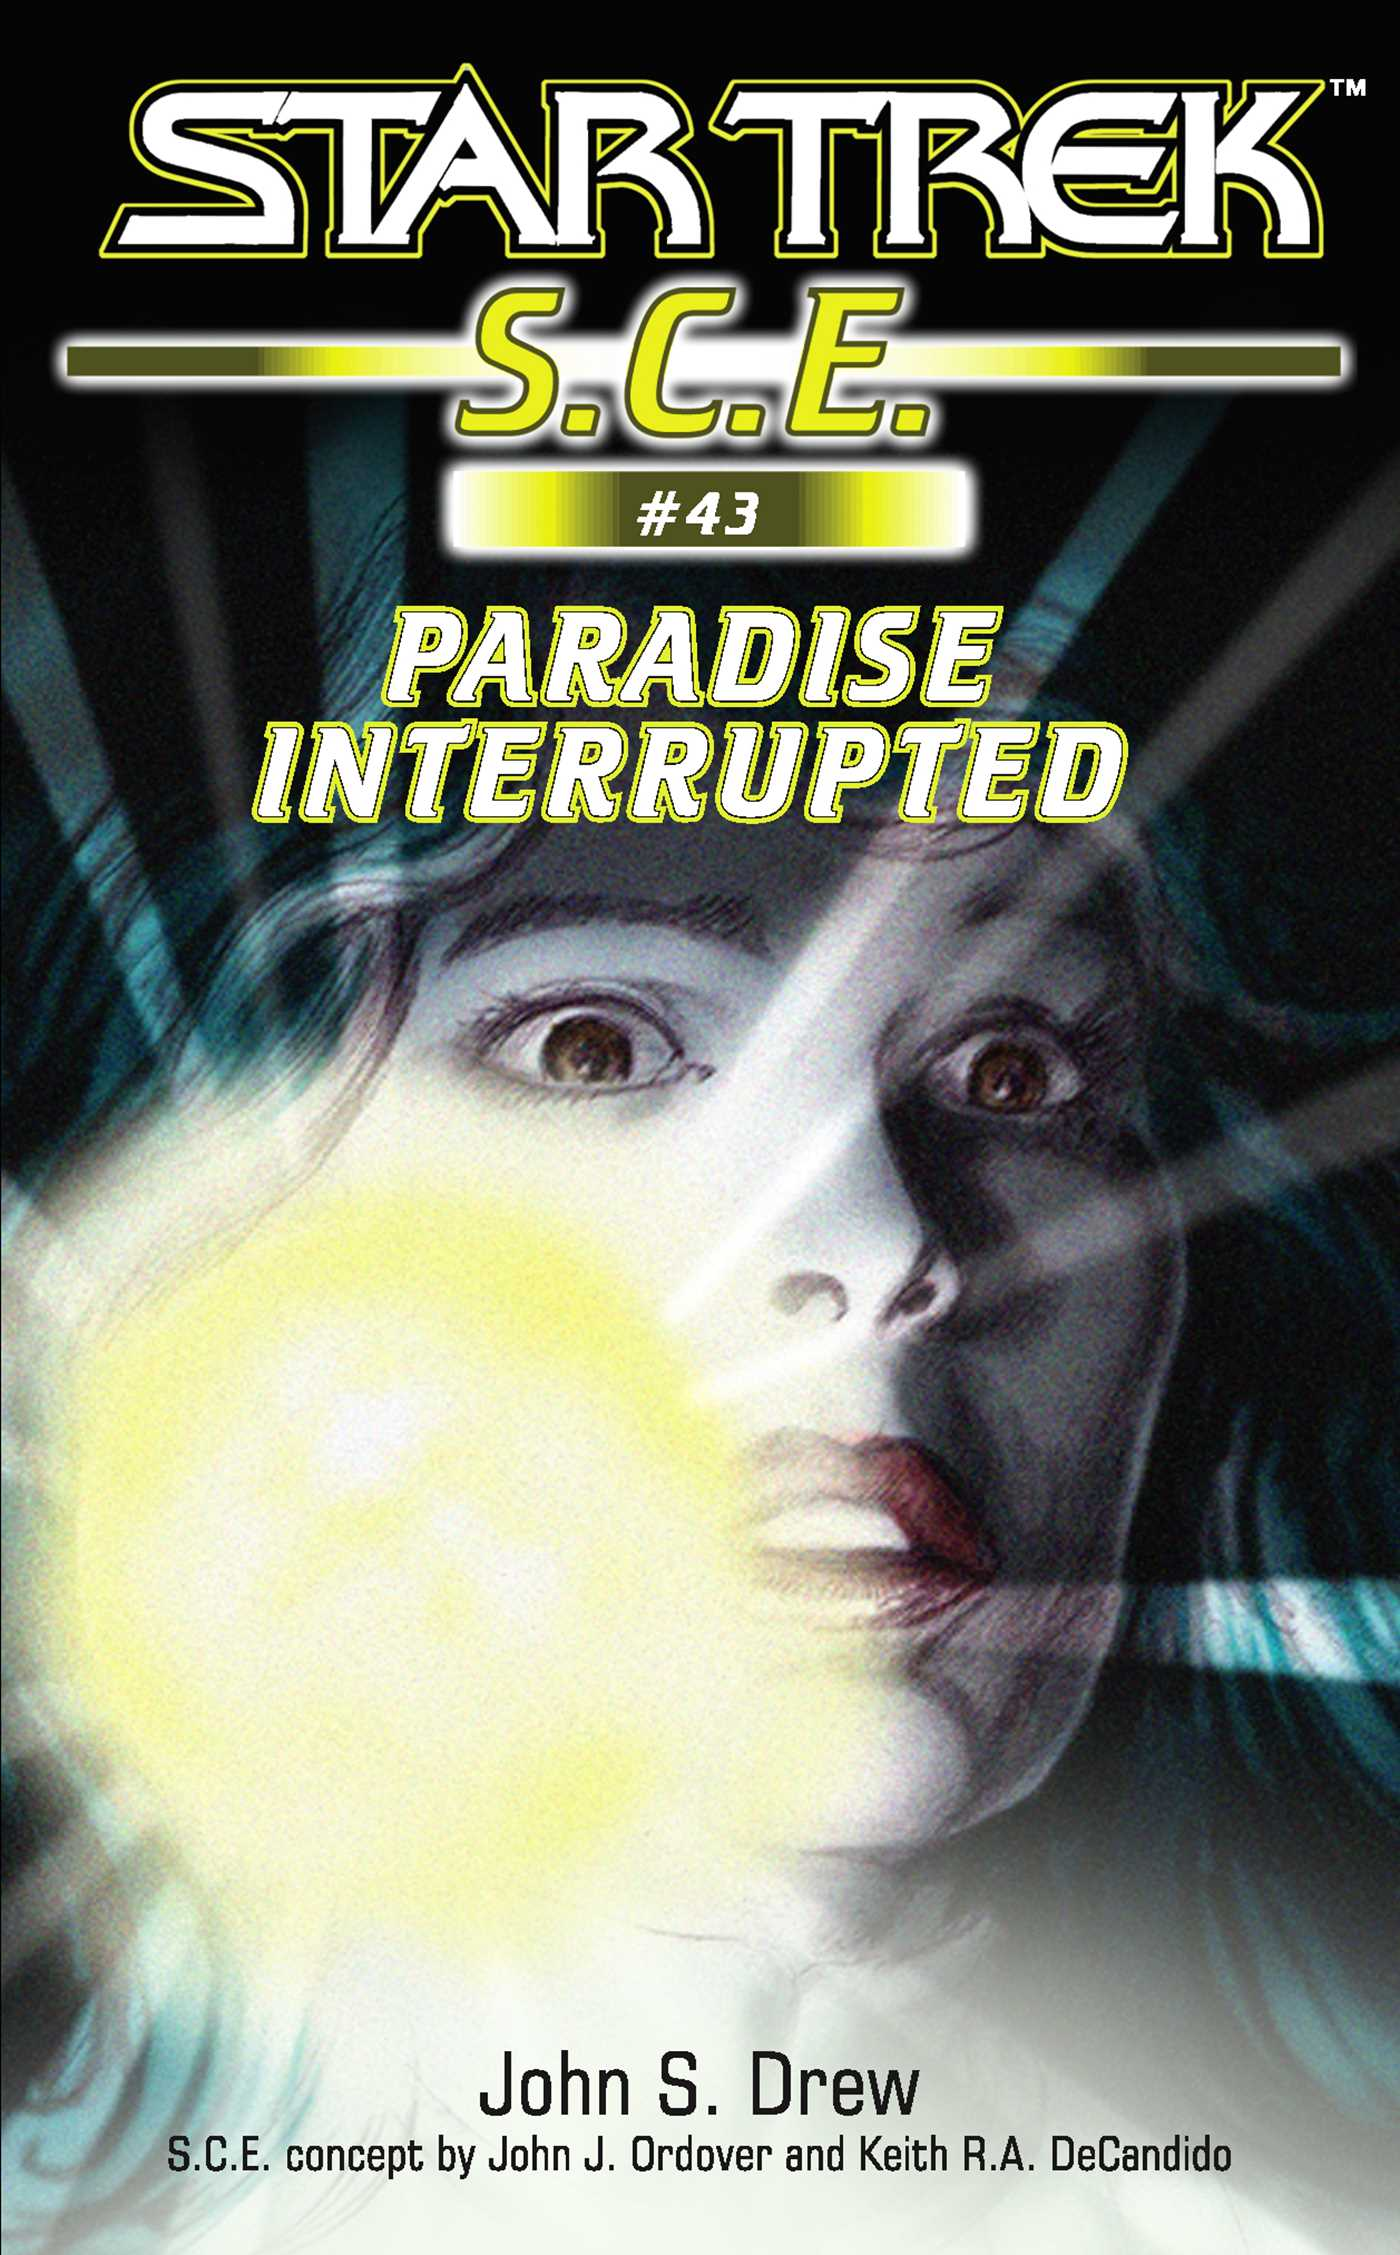 Star trek paradise interrupted 9780743493666 hr